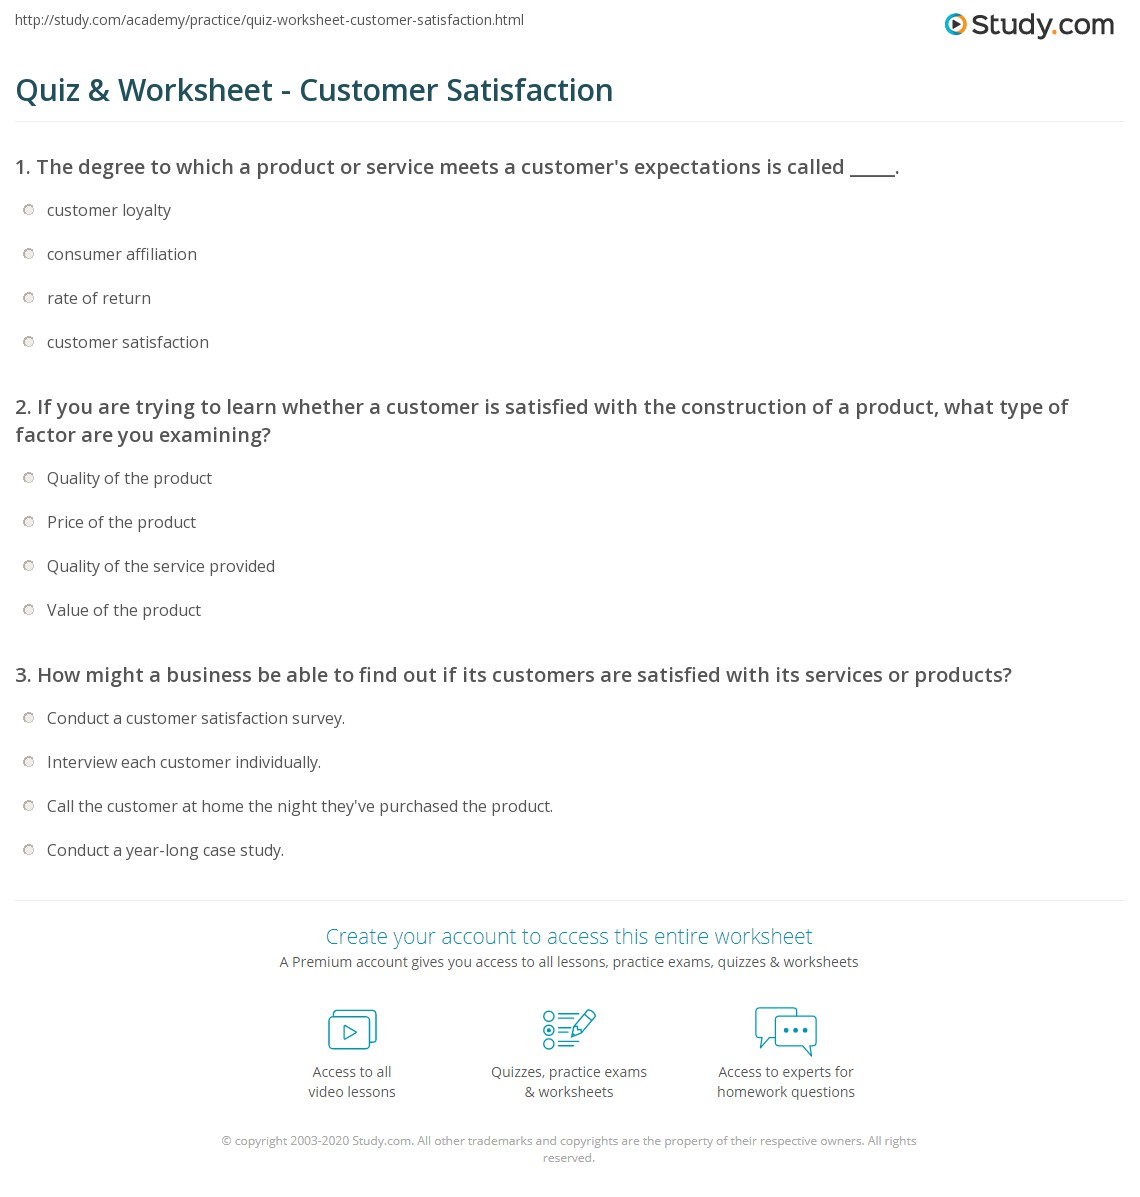 quiz & worksheet - customer satisfaction | study